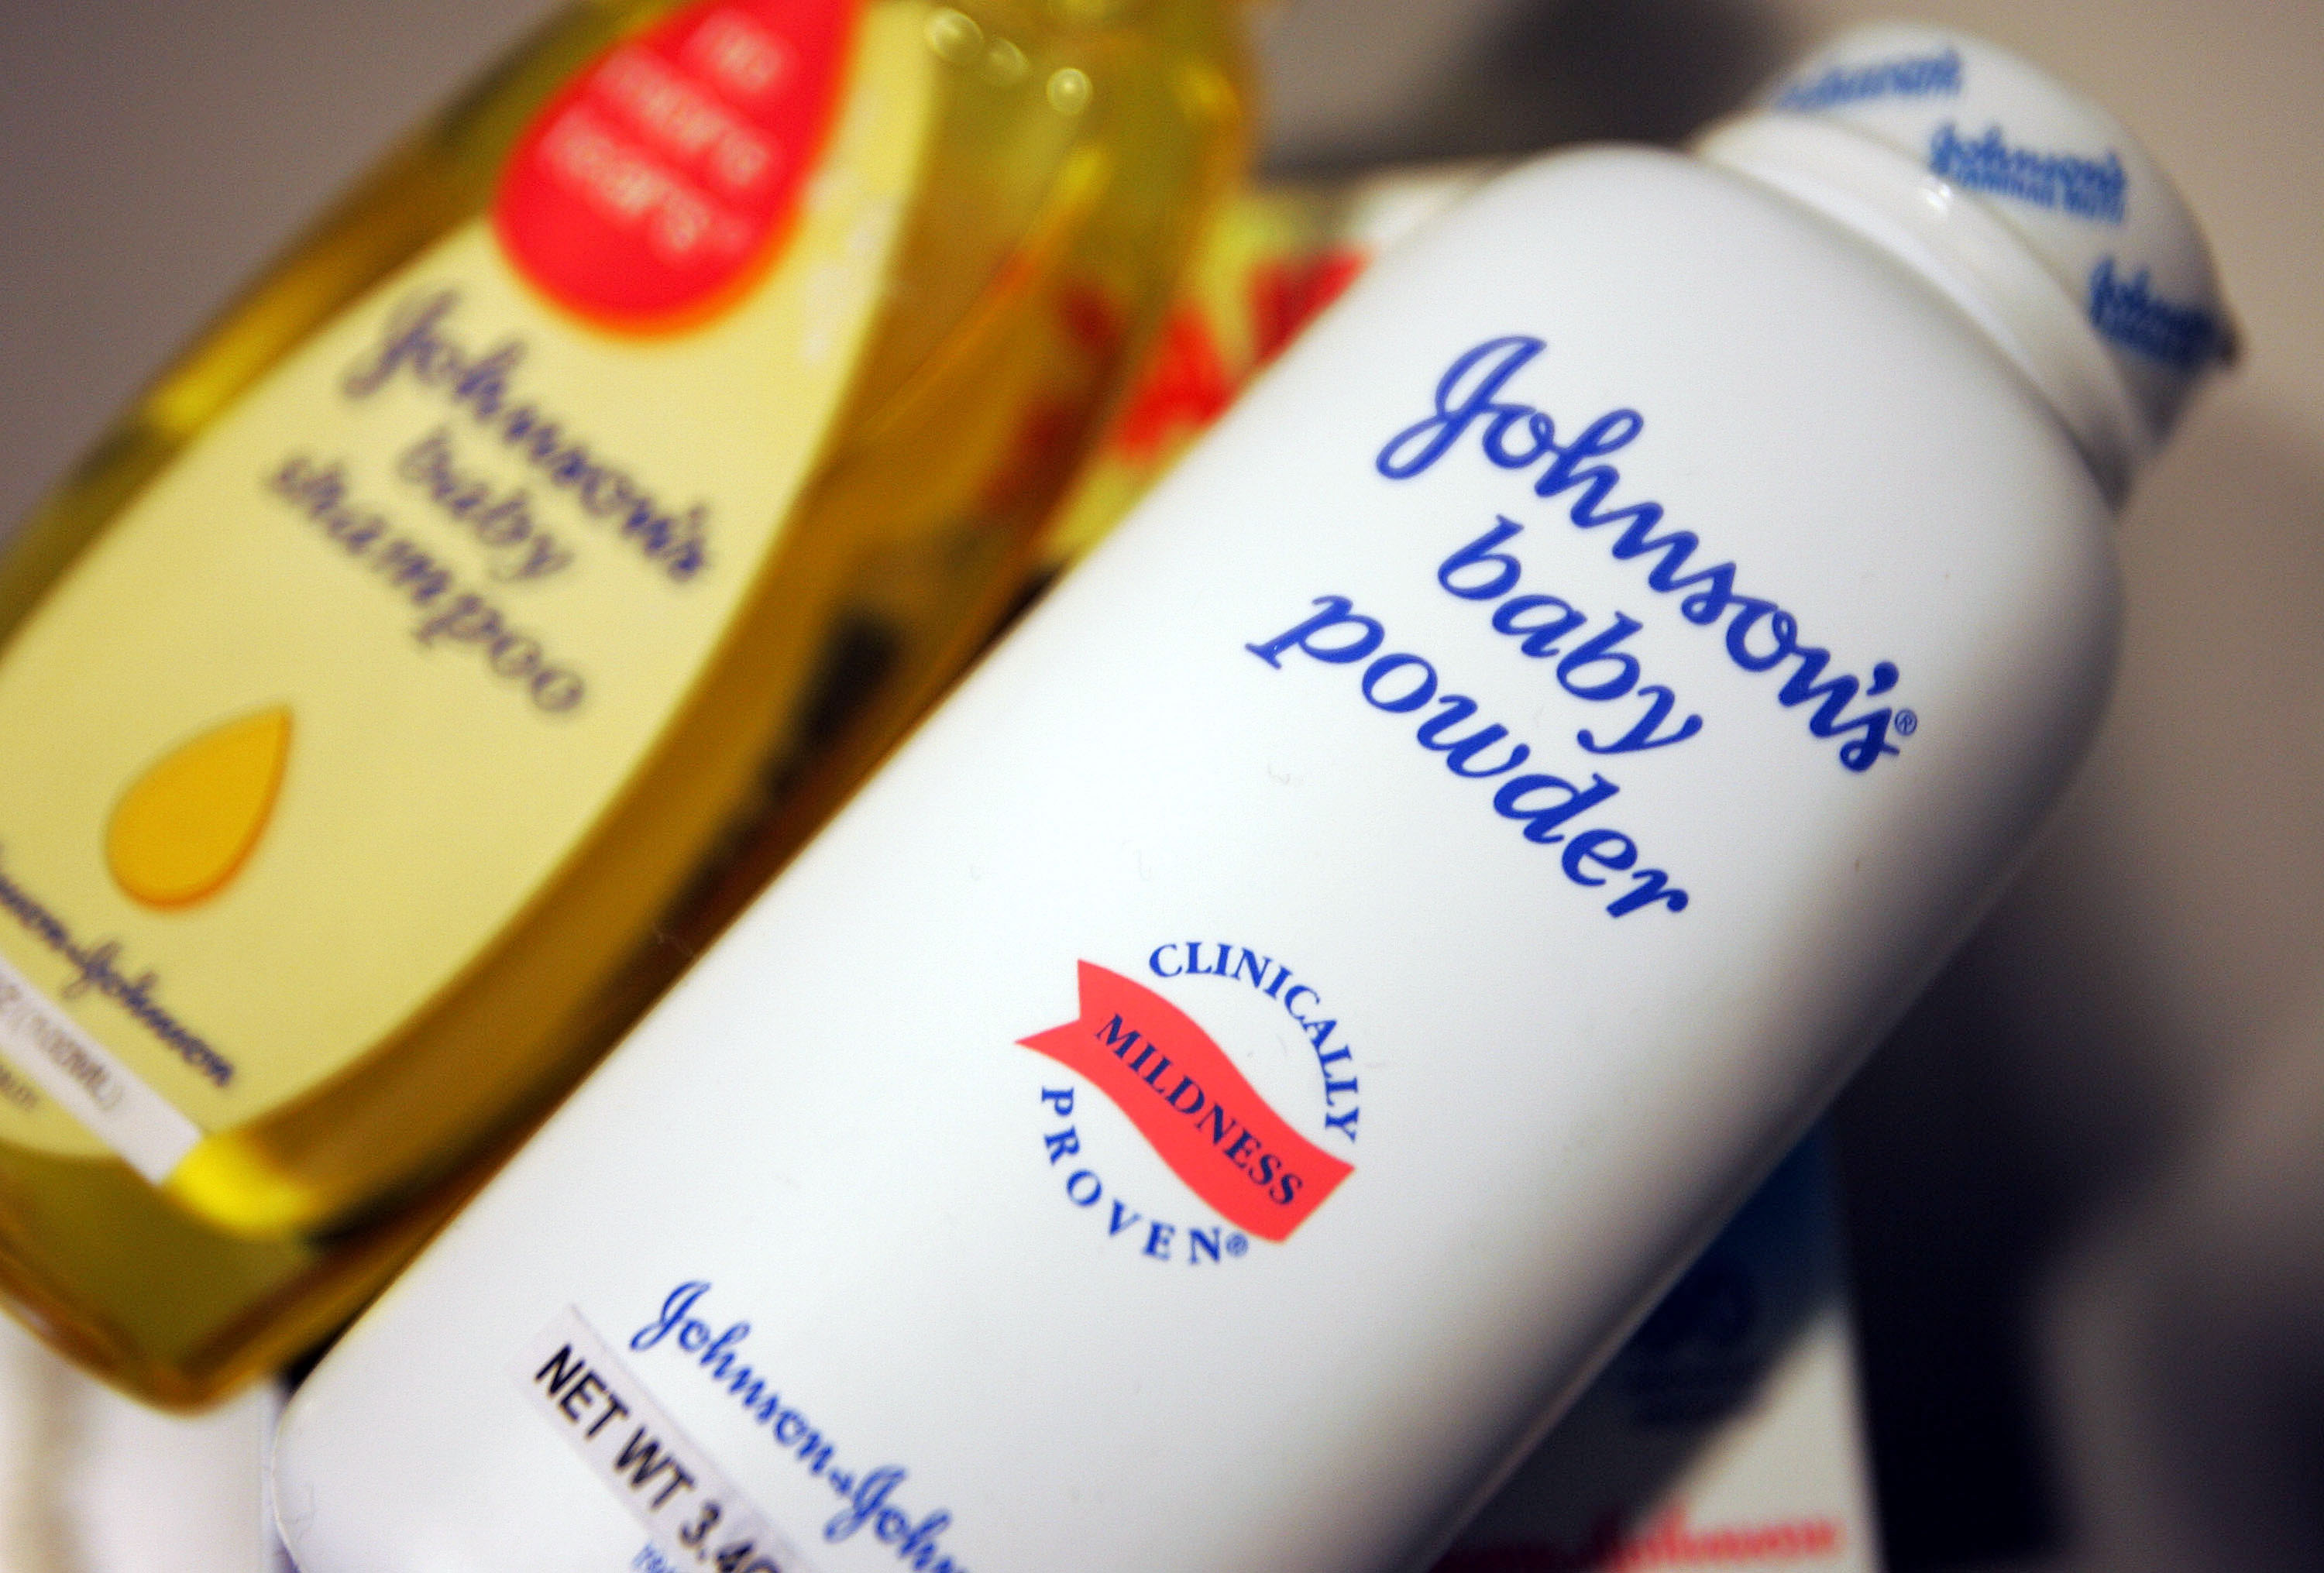 Johnson & Johnson's products are seen December 16, 2004 in New York.